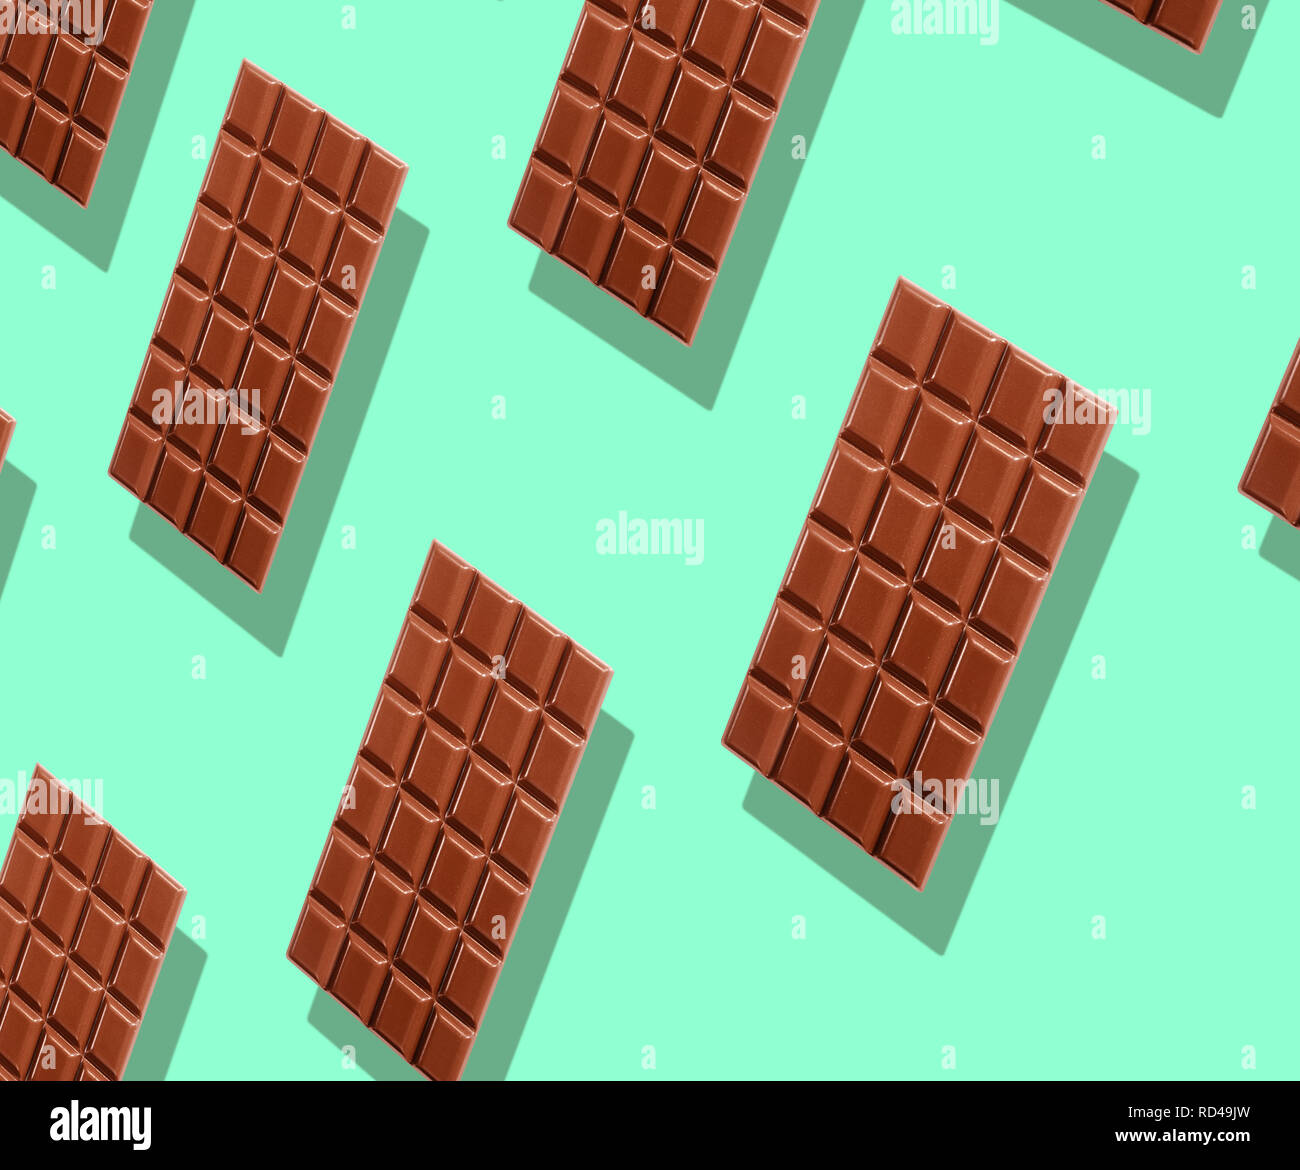 Pattern of whole delicious milk chocolate tablets hovering over green background with shadow in full frame - Stock Image